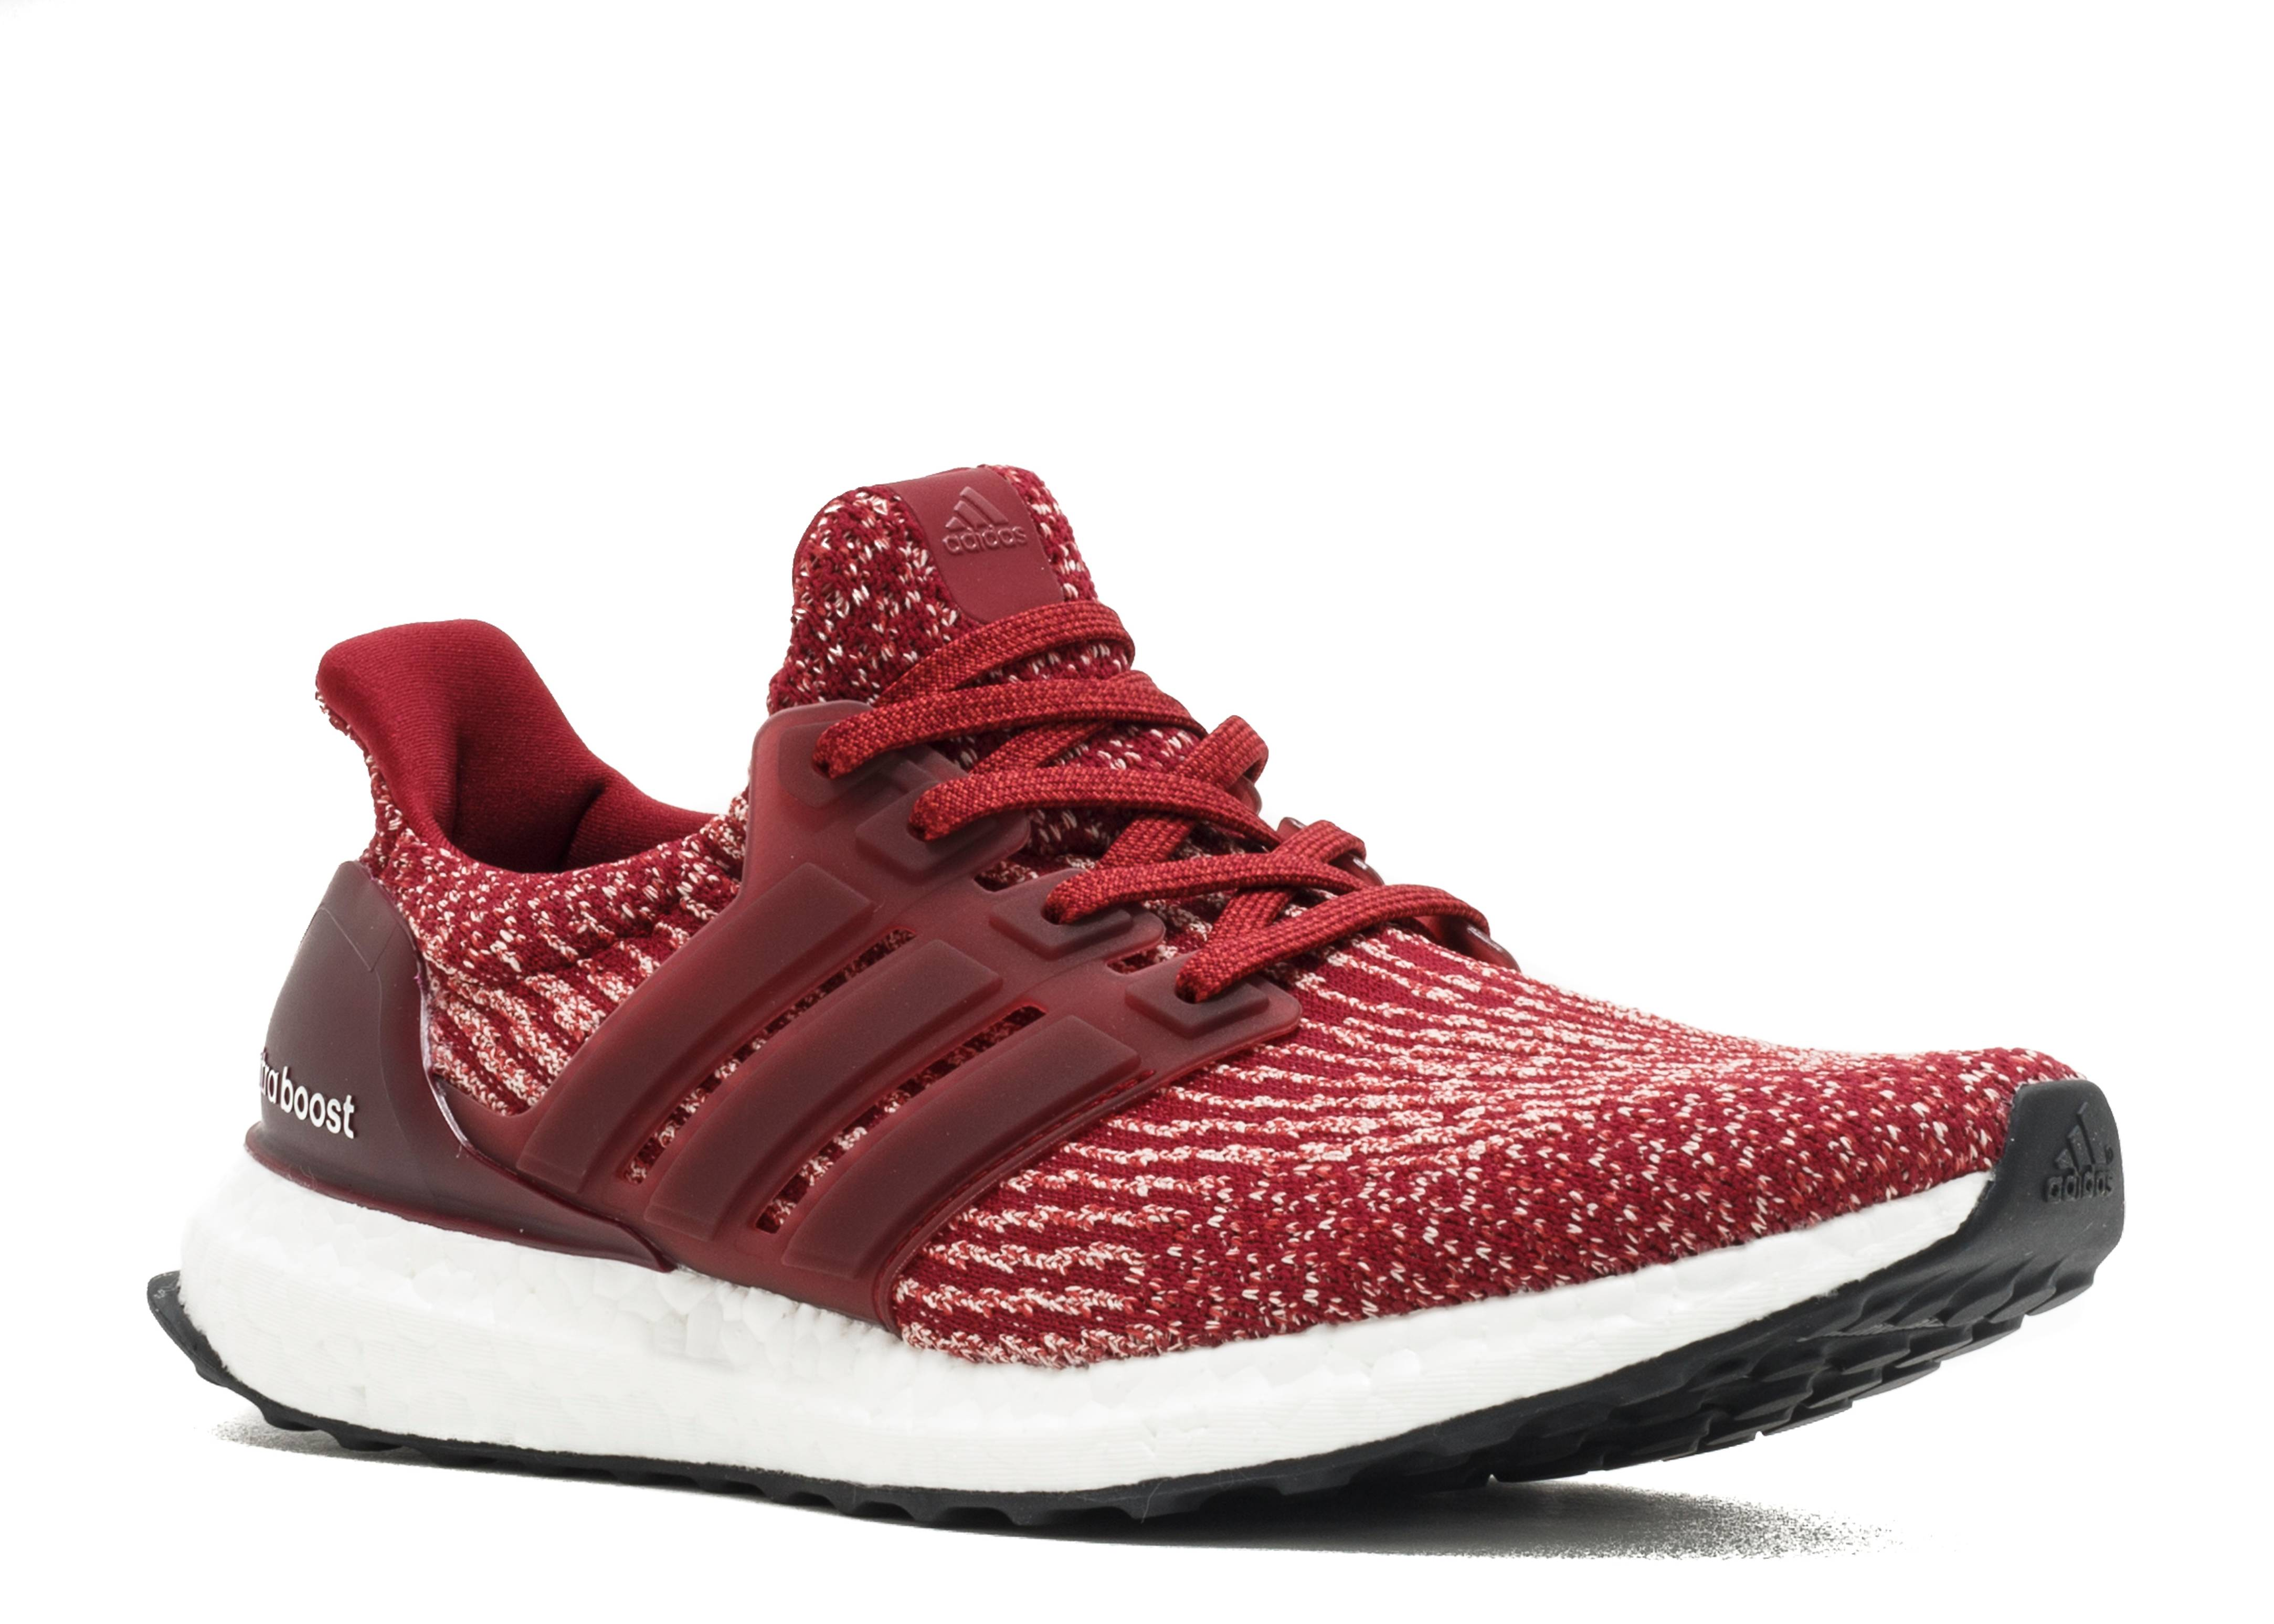 ultra boost 3 0 burgundy adidas ba8845 burgundy. Black Bedroom Furniture Sets. Home Design Ideas